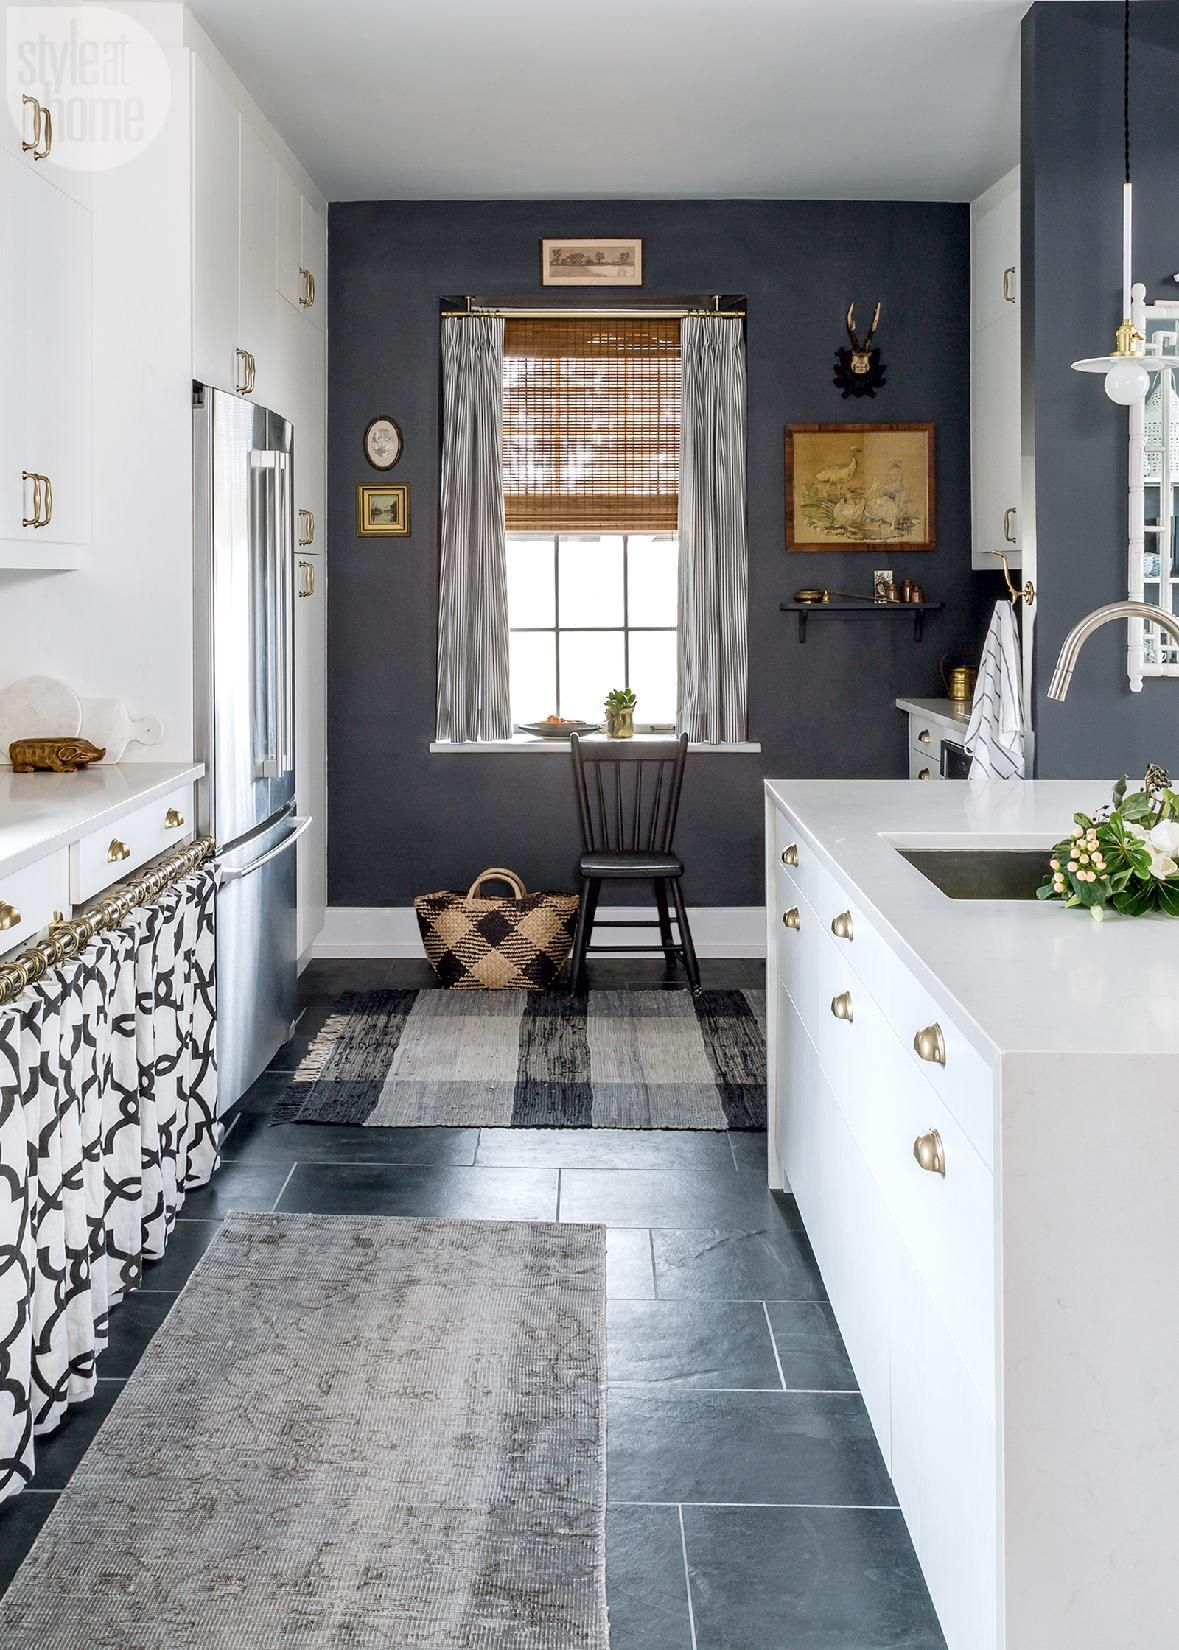 Narrow Galley Kitchen A Bespoke Kitchen Remodel With Nordic Country Flair